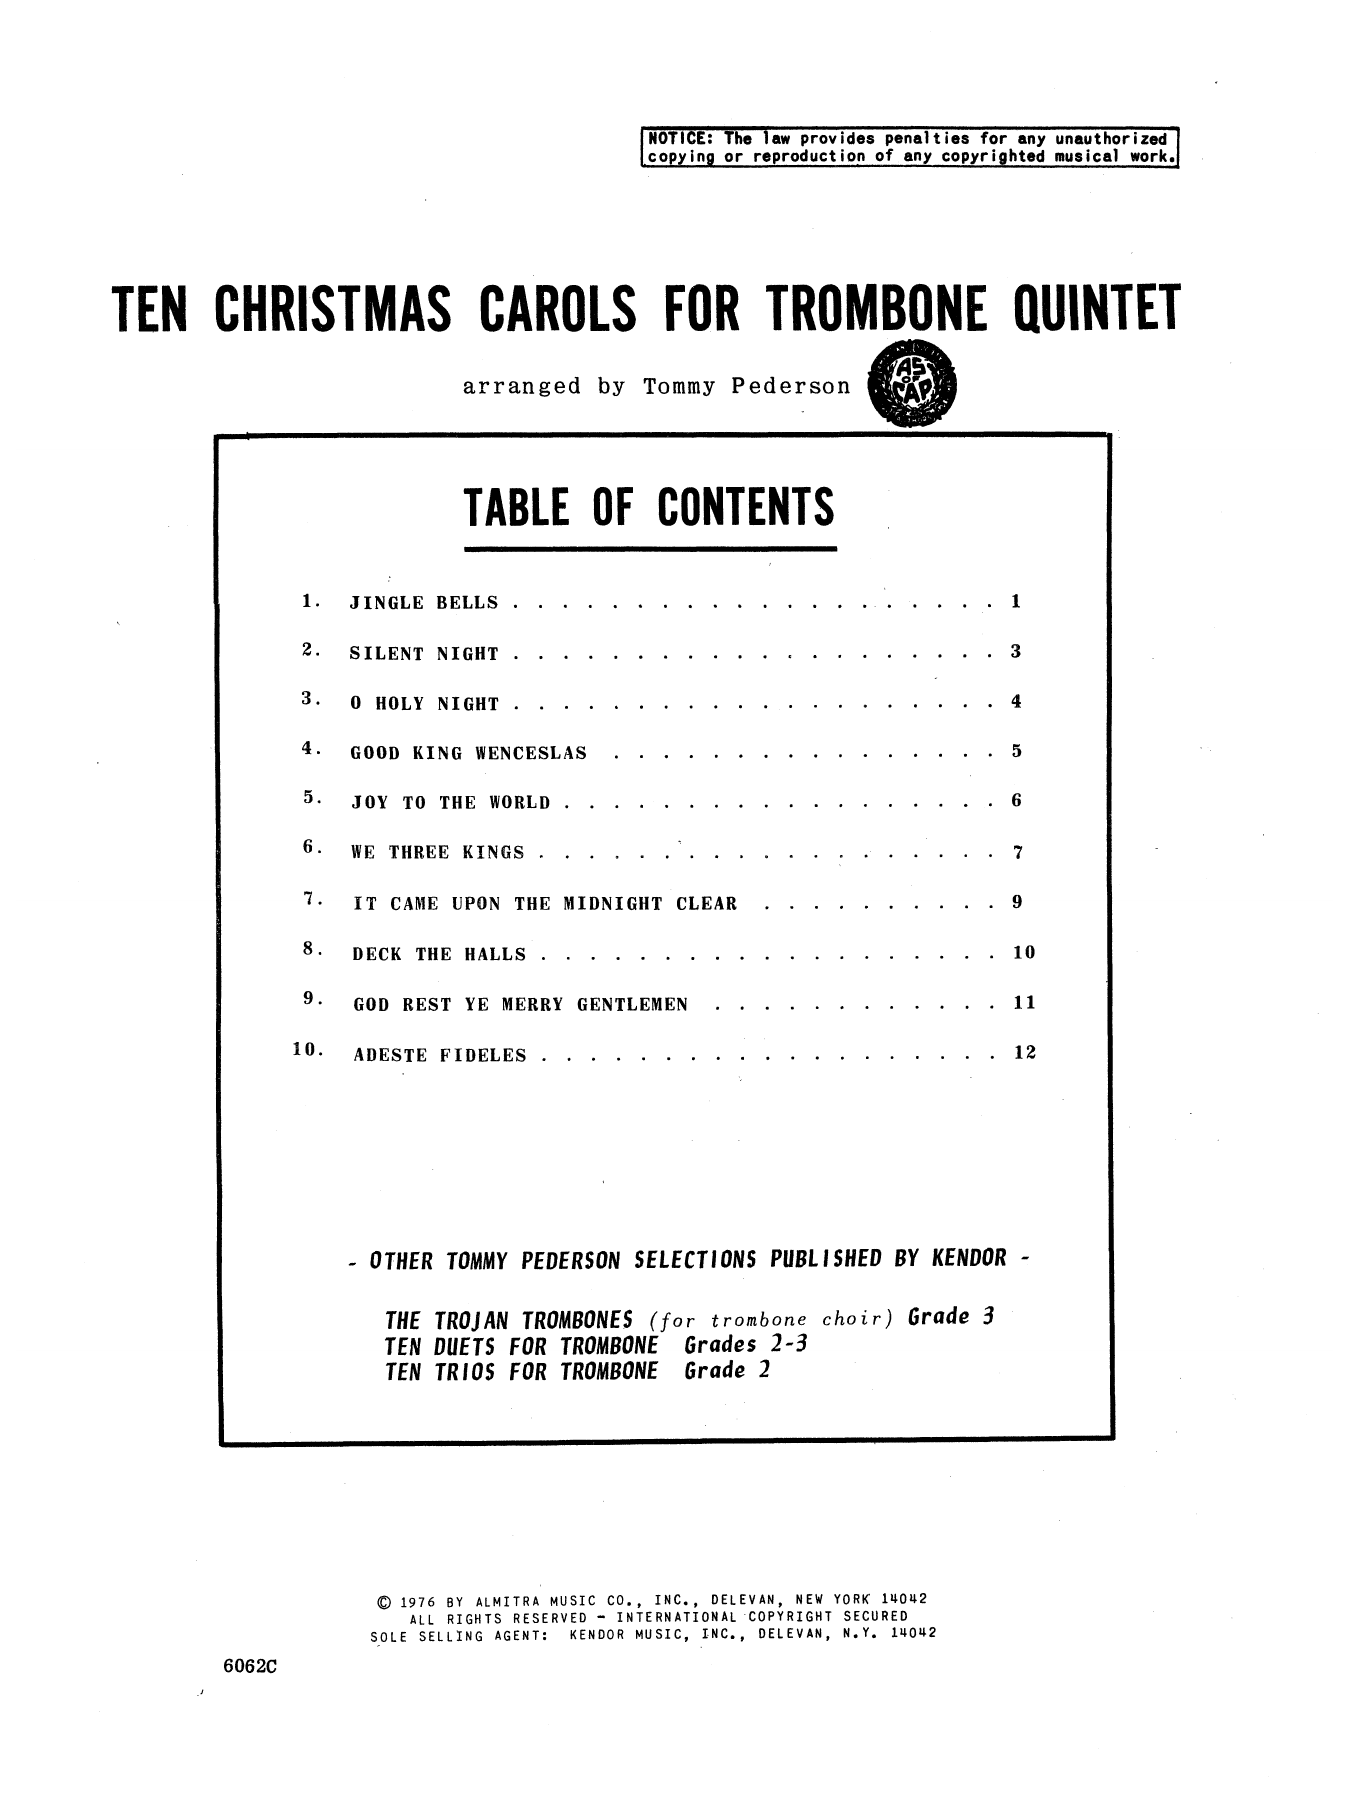 Ten Christmas Carols For Trombone Quintet/3rd Trombone Sheet Music